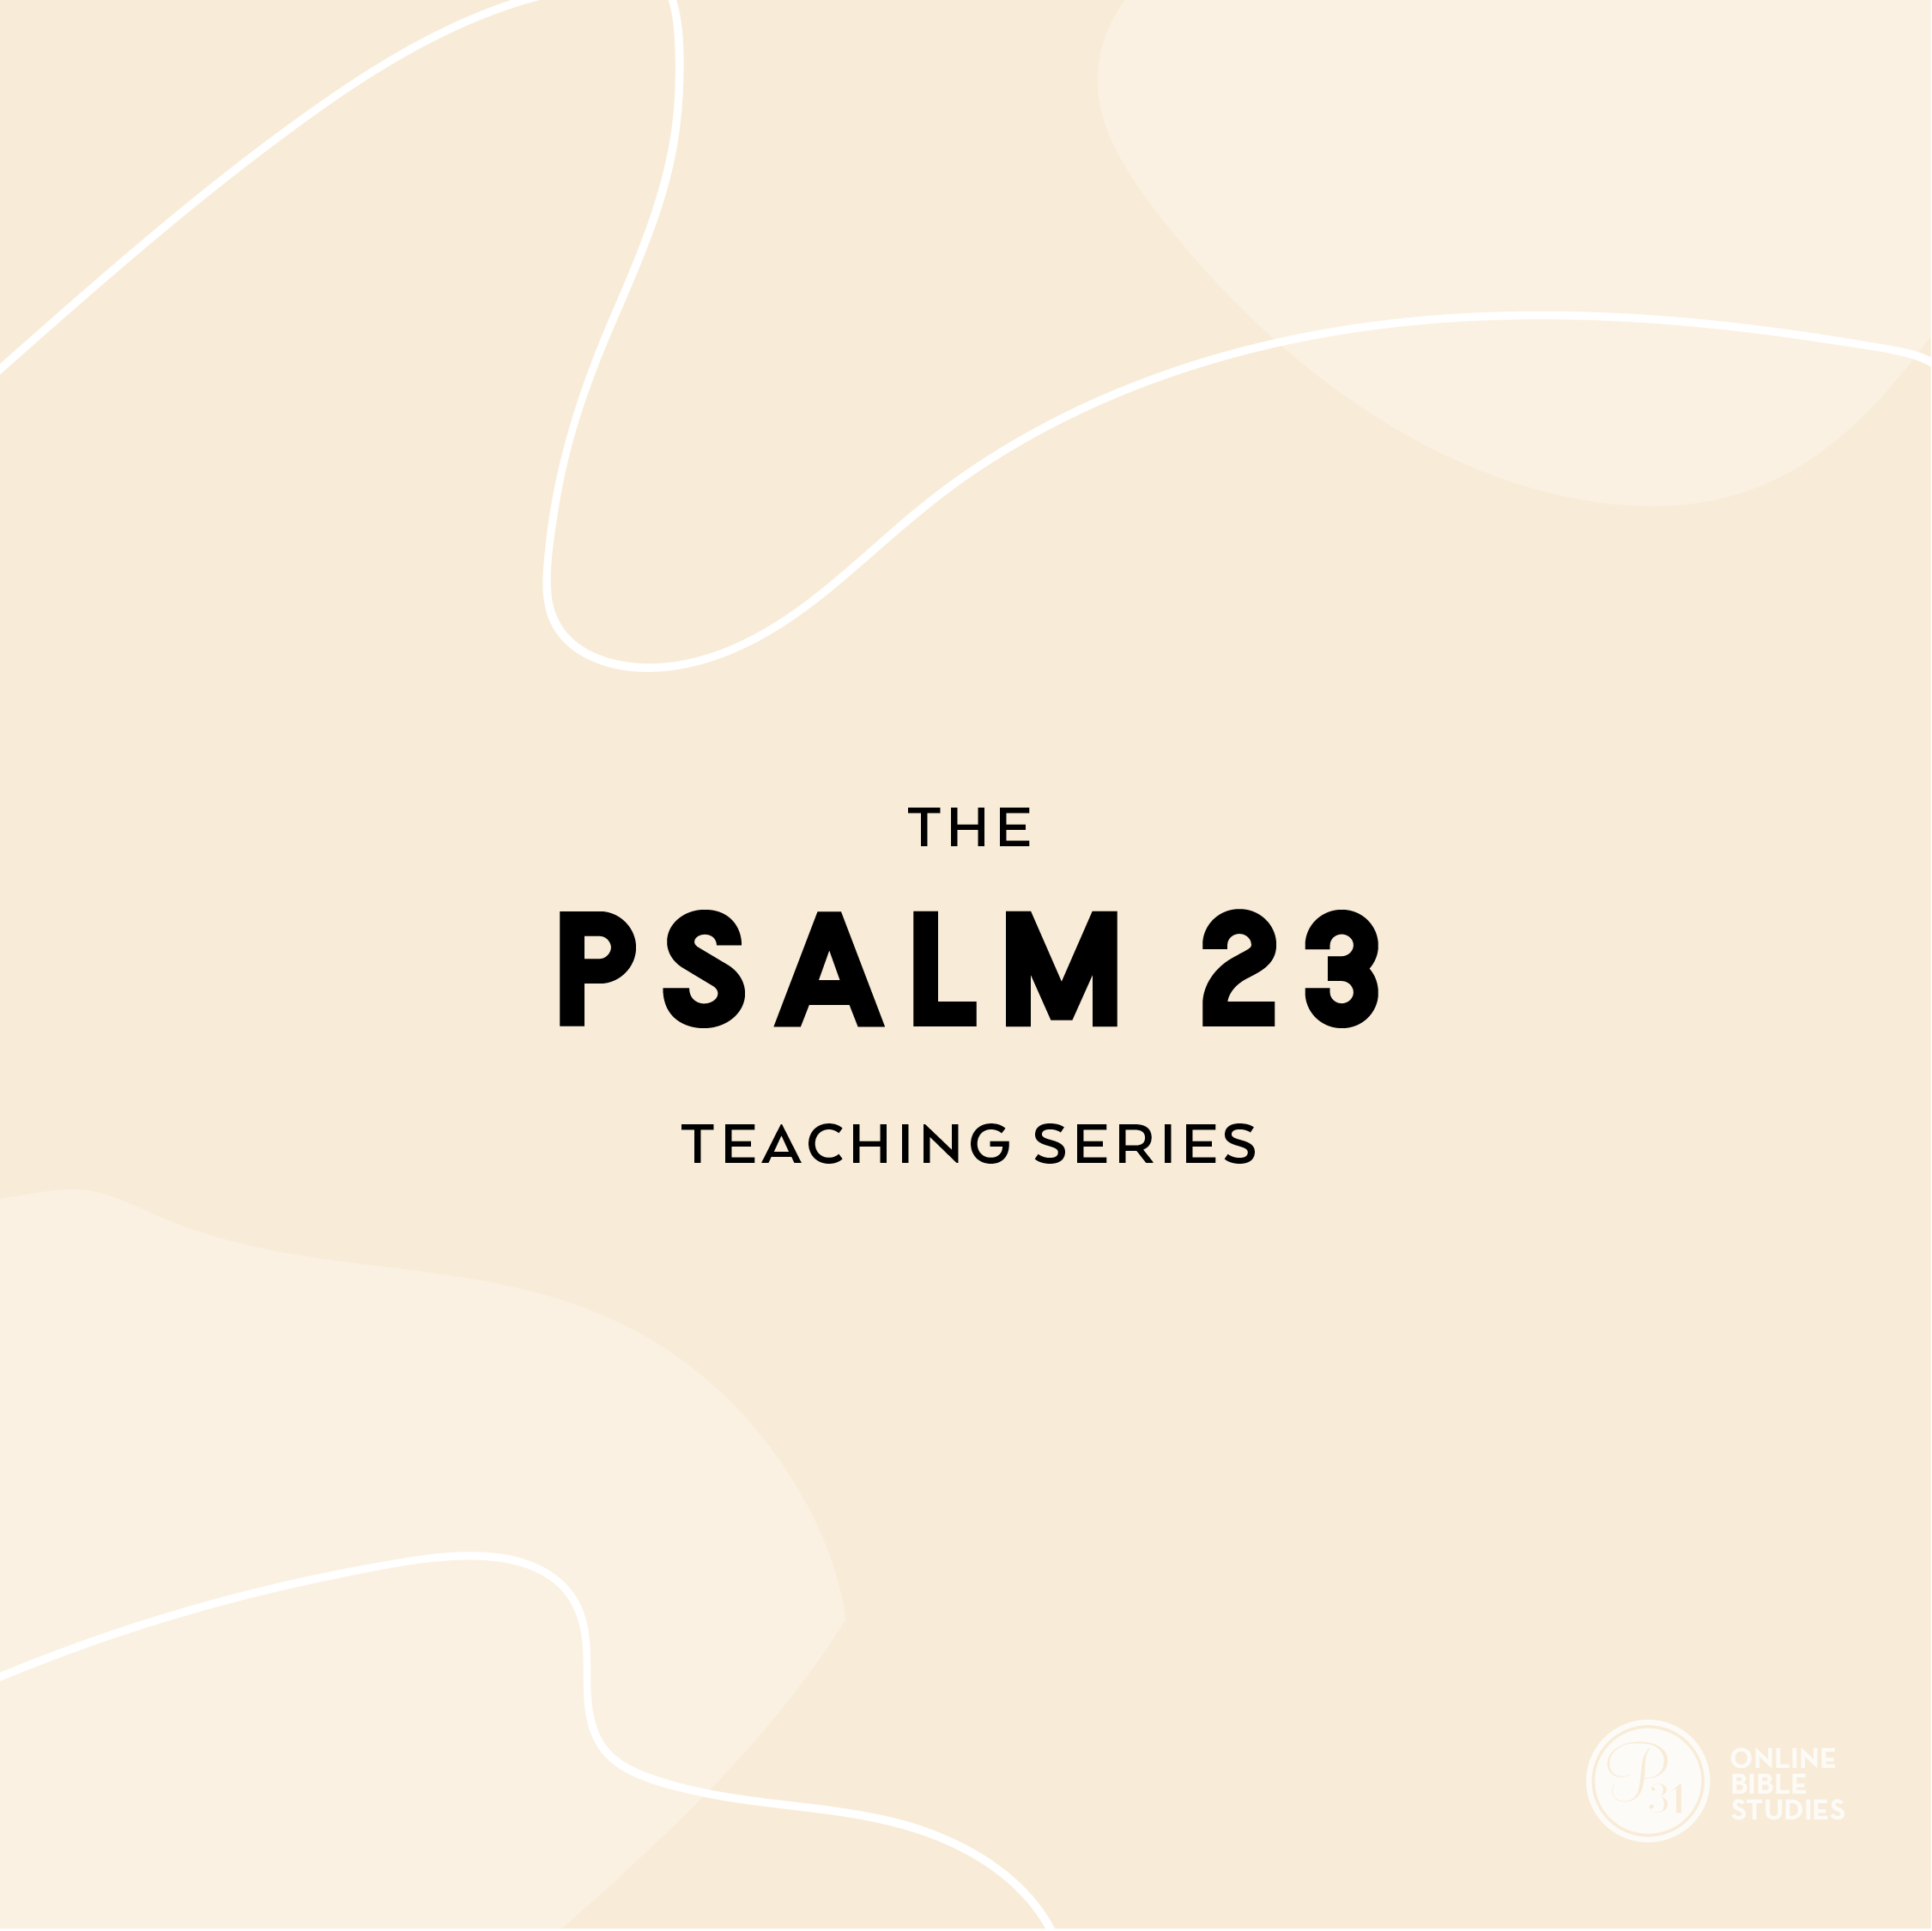 2019_OBS_Psalm23_TeachingSeries-02